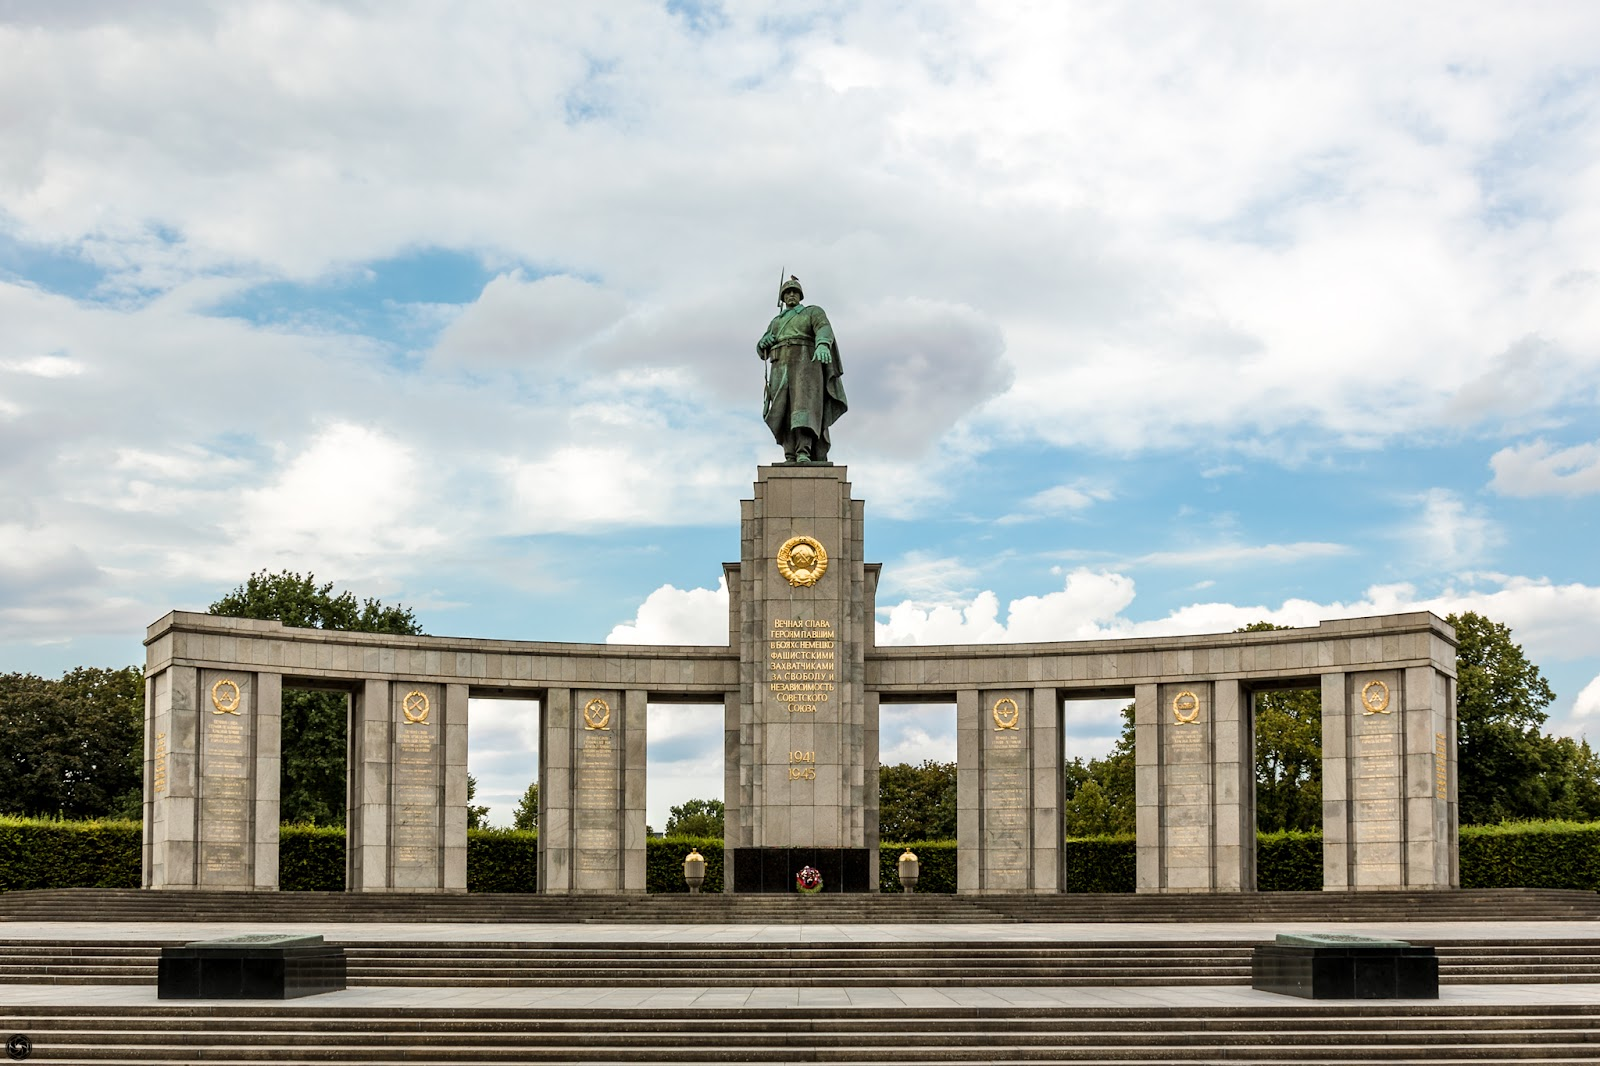 War memorial :: HDR 3 x Canon EOS5D MkIII ISO100 | Canon24-105 @28mm | f/9.0 | 1/40s 1/160s 1/640s